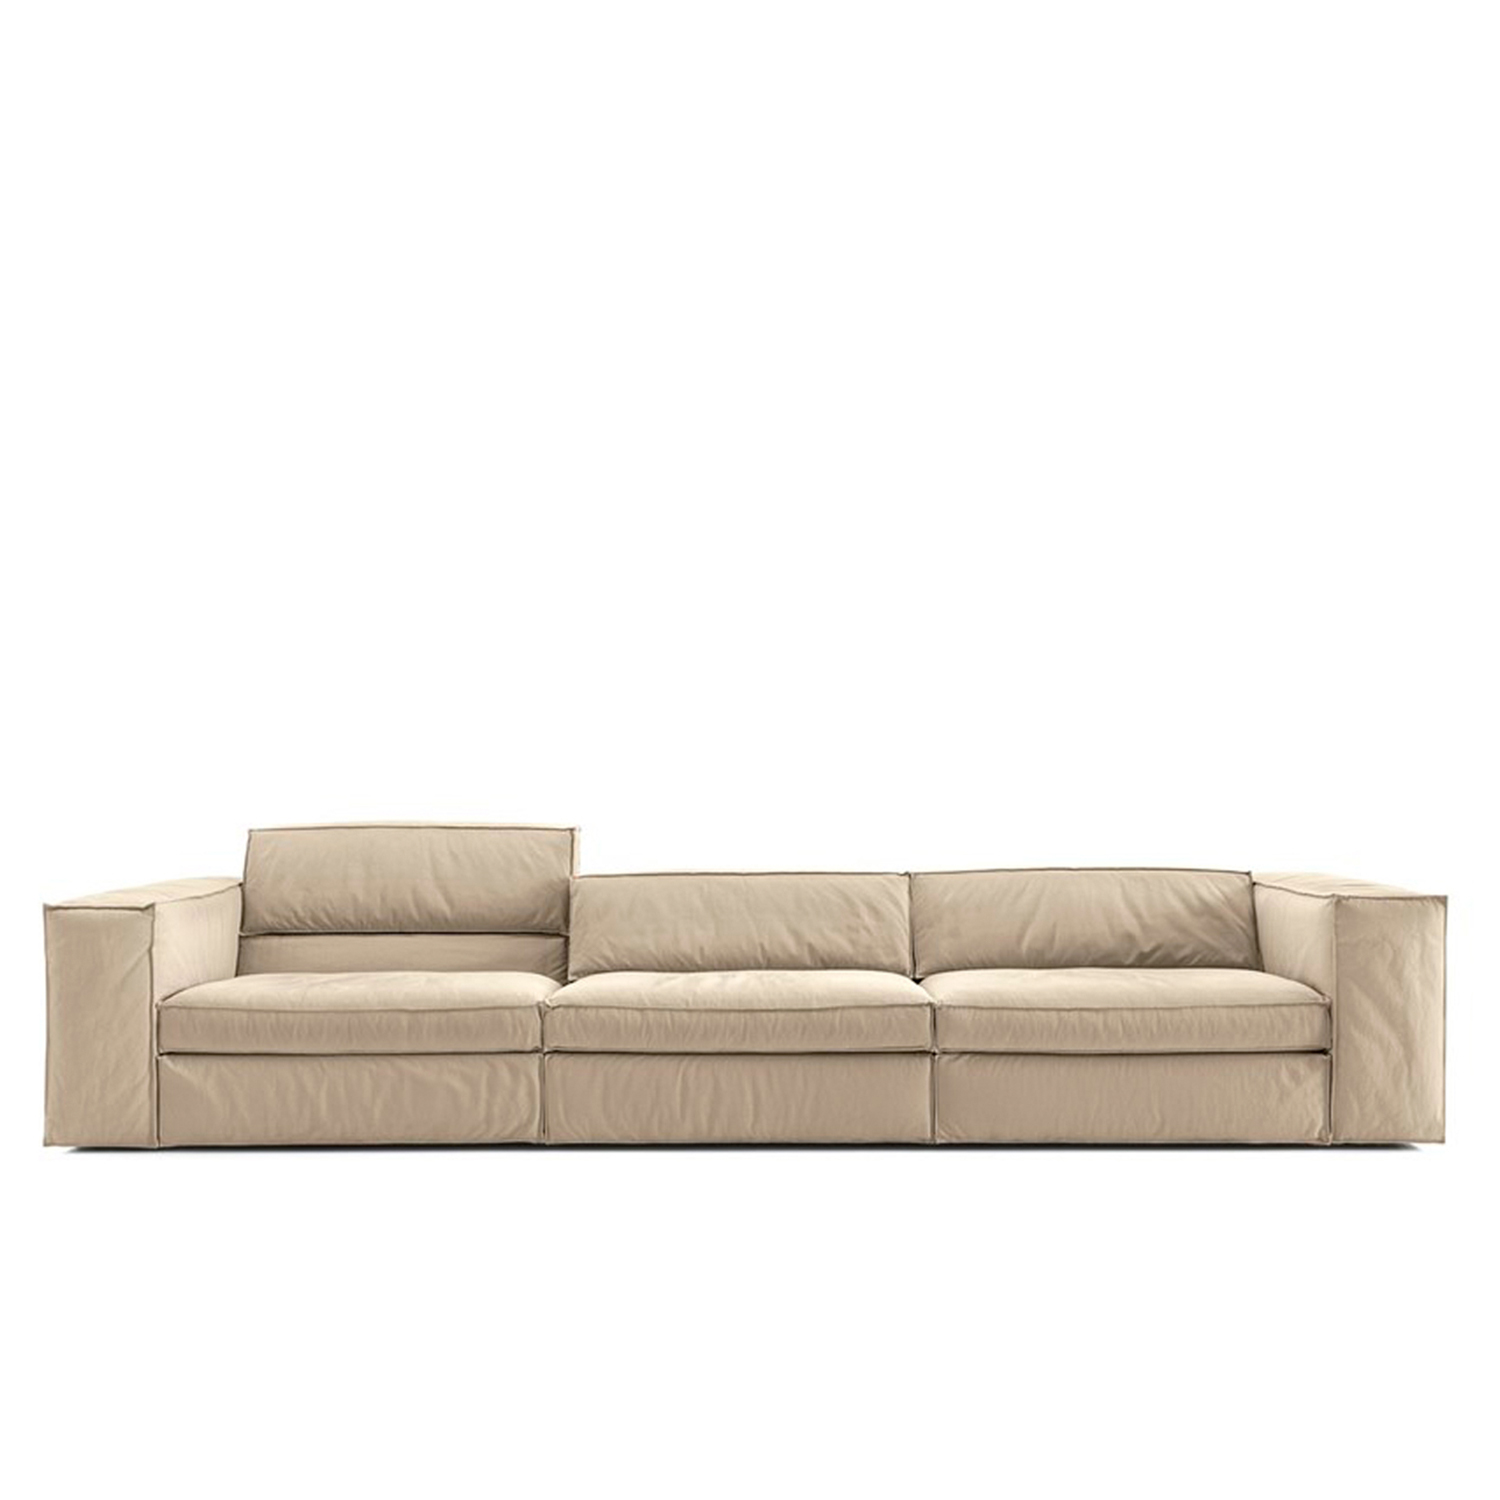 Up Modular Sofa - The Up sofa uses a simple mechanism similar to Lego's snap-on system that allows customers to choose the height of the backrest that best satisfies their comfort requirements. The back cushions can be placed on top of the low backrest to create a deeper seat and an overall higher backrest. The particular shape of the cushions ensures maximum stability. The goose-feather padded cushions and armrests create a particularly soft, snug sofa. Also available with raw-edged leather upholstery.  This item is available in various sizes and combinations. Please enquire for more information and prices.  Materials Structure in solid wood variable-density polyurethane foam coating covered with cotton and polyester fiber 380gr/sqm. The arm padding is completed, on the upper part, by a feather layer. The seat is sprung with elastic straps reinforced with polypropylene. Feet in black PVC 25 mm high. The seat cushions are in washed and sterilized goose down divided into compartments and covered with 100% white cotton fabric with a polyurethane foam core. The black cushions are filled with washed an sterilized goose down divided into compartments and covered | Matter of Stuff